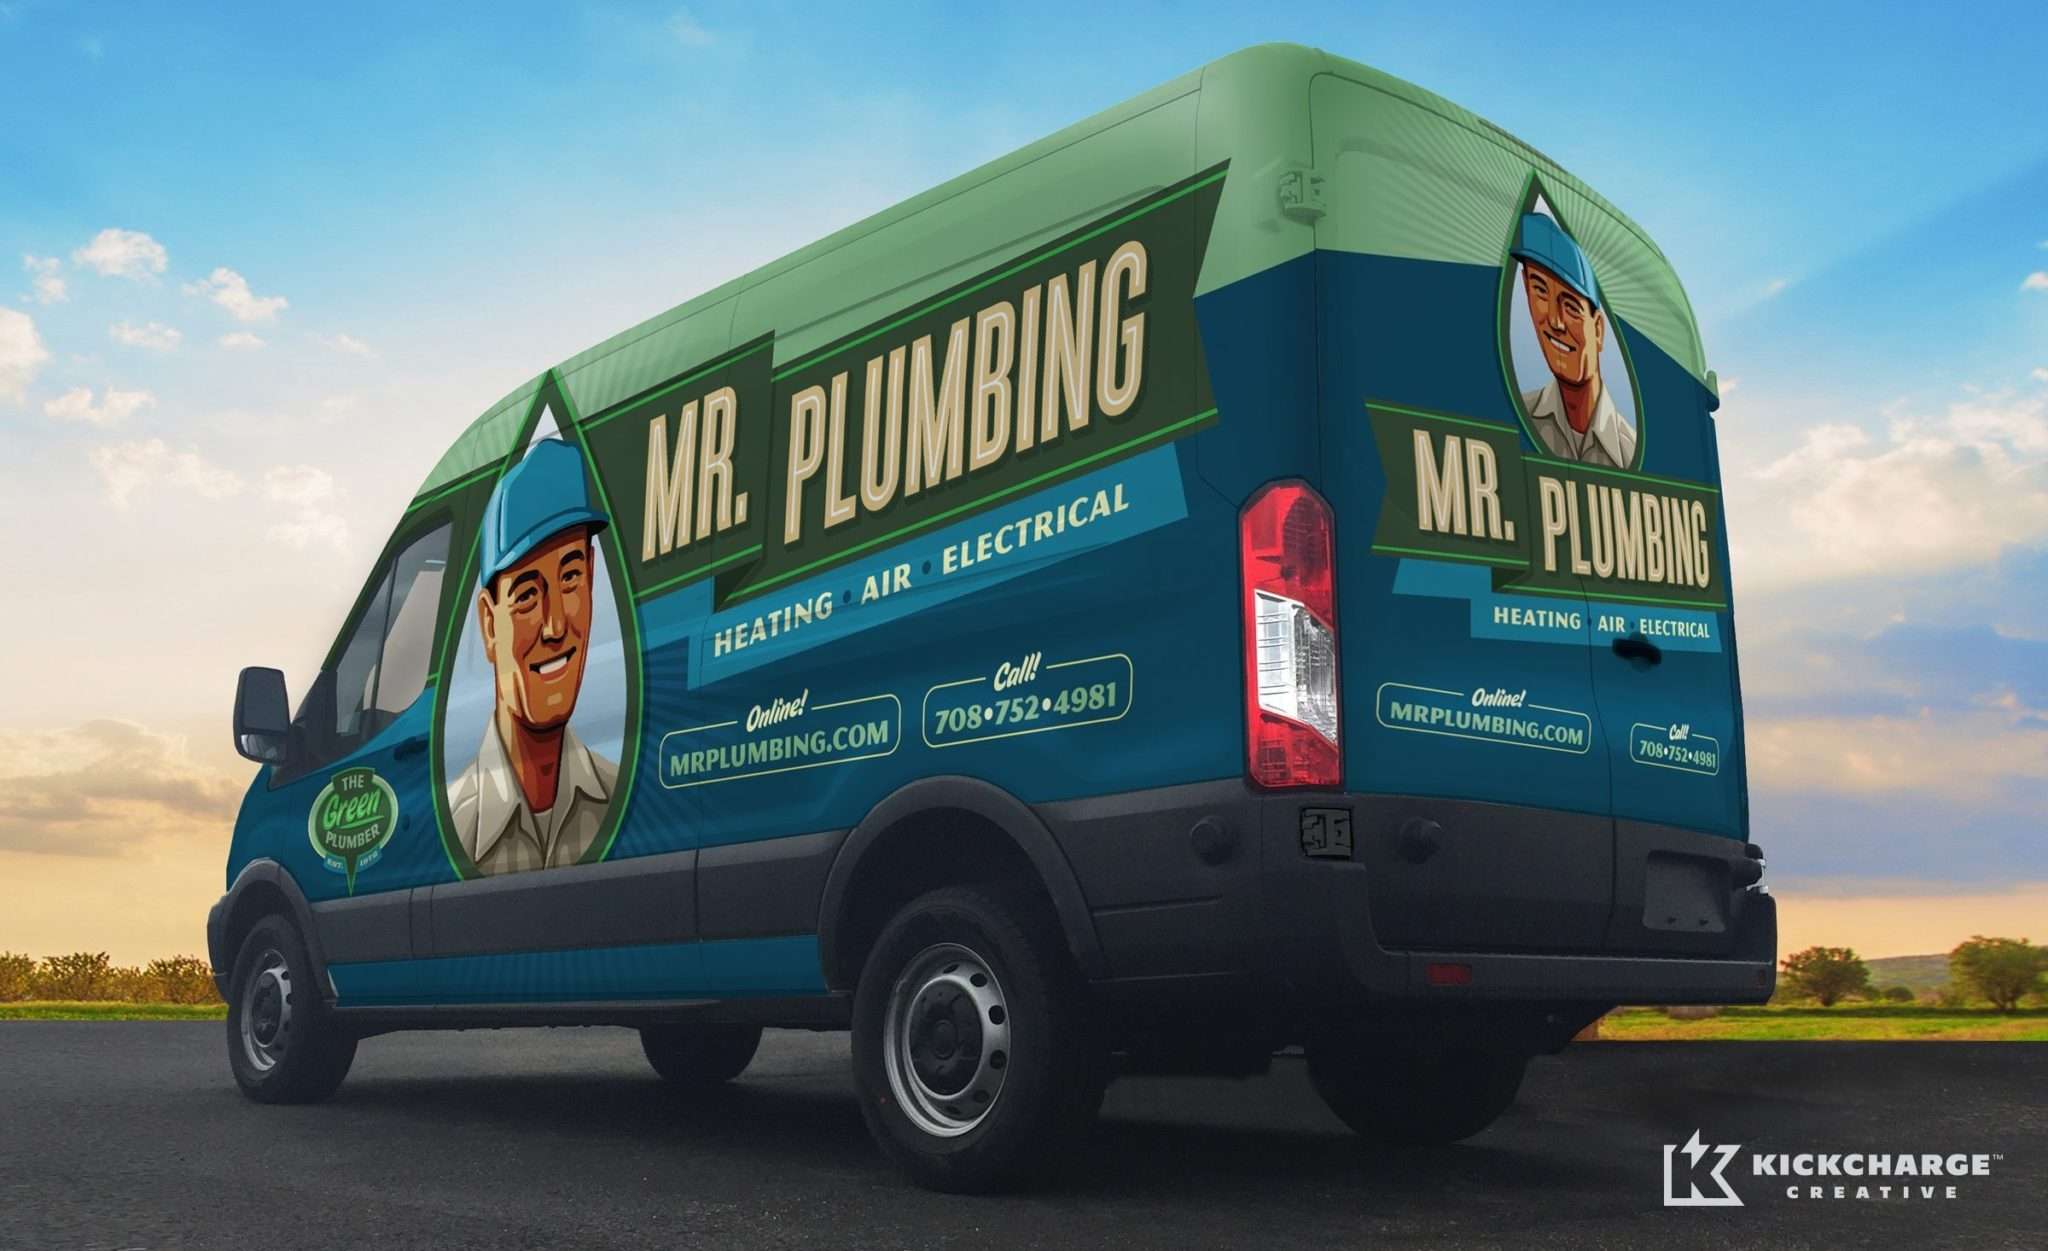 mr. plumbing heating air electrical